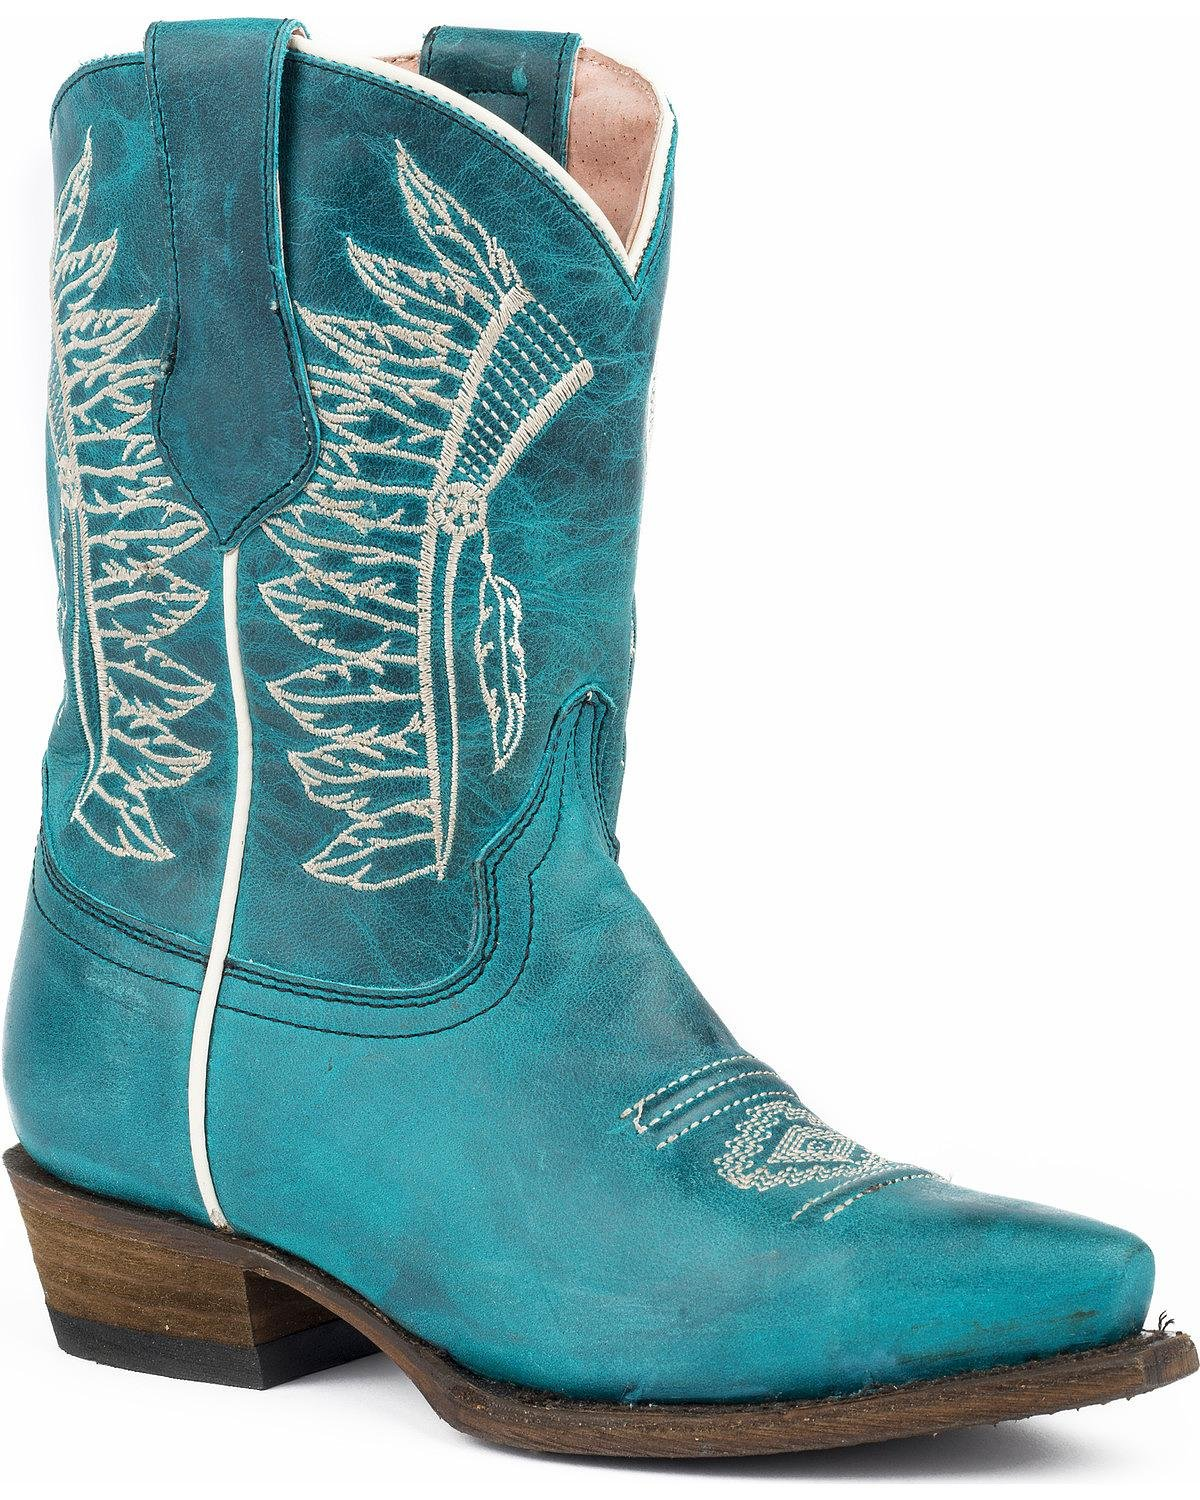 Roper Kids Chiefs Snip Toe Turquoise Boots B074QSW3PT 11 M US Little Kid|Turquoise Vamp/Headdress Embossed Shaft